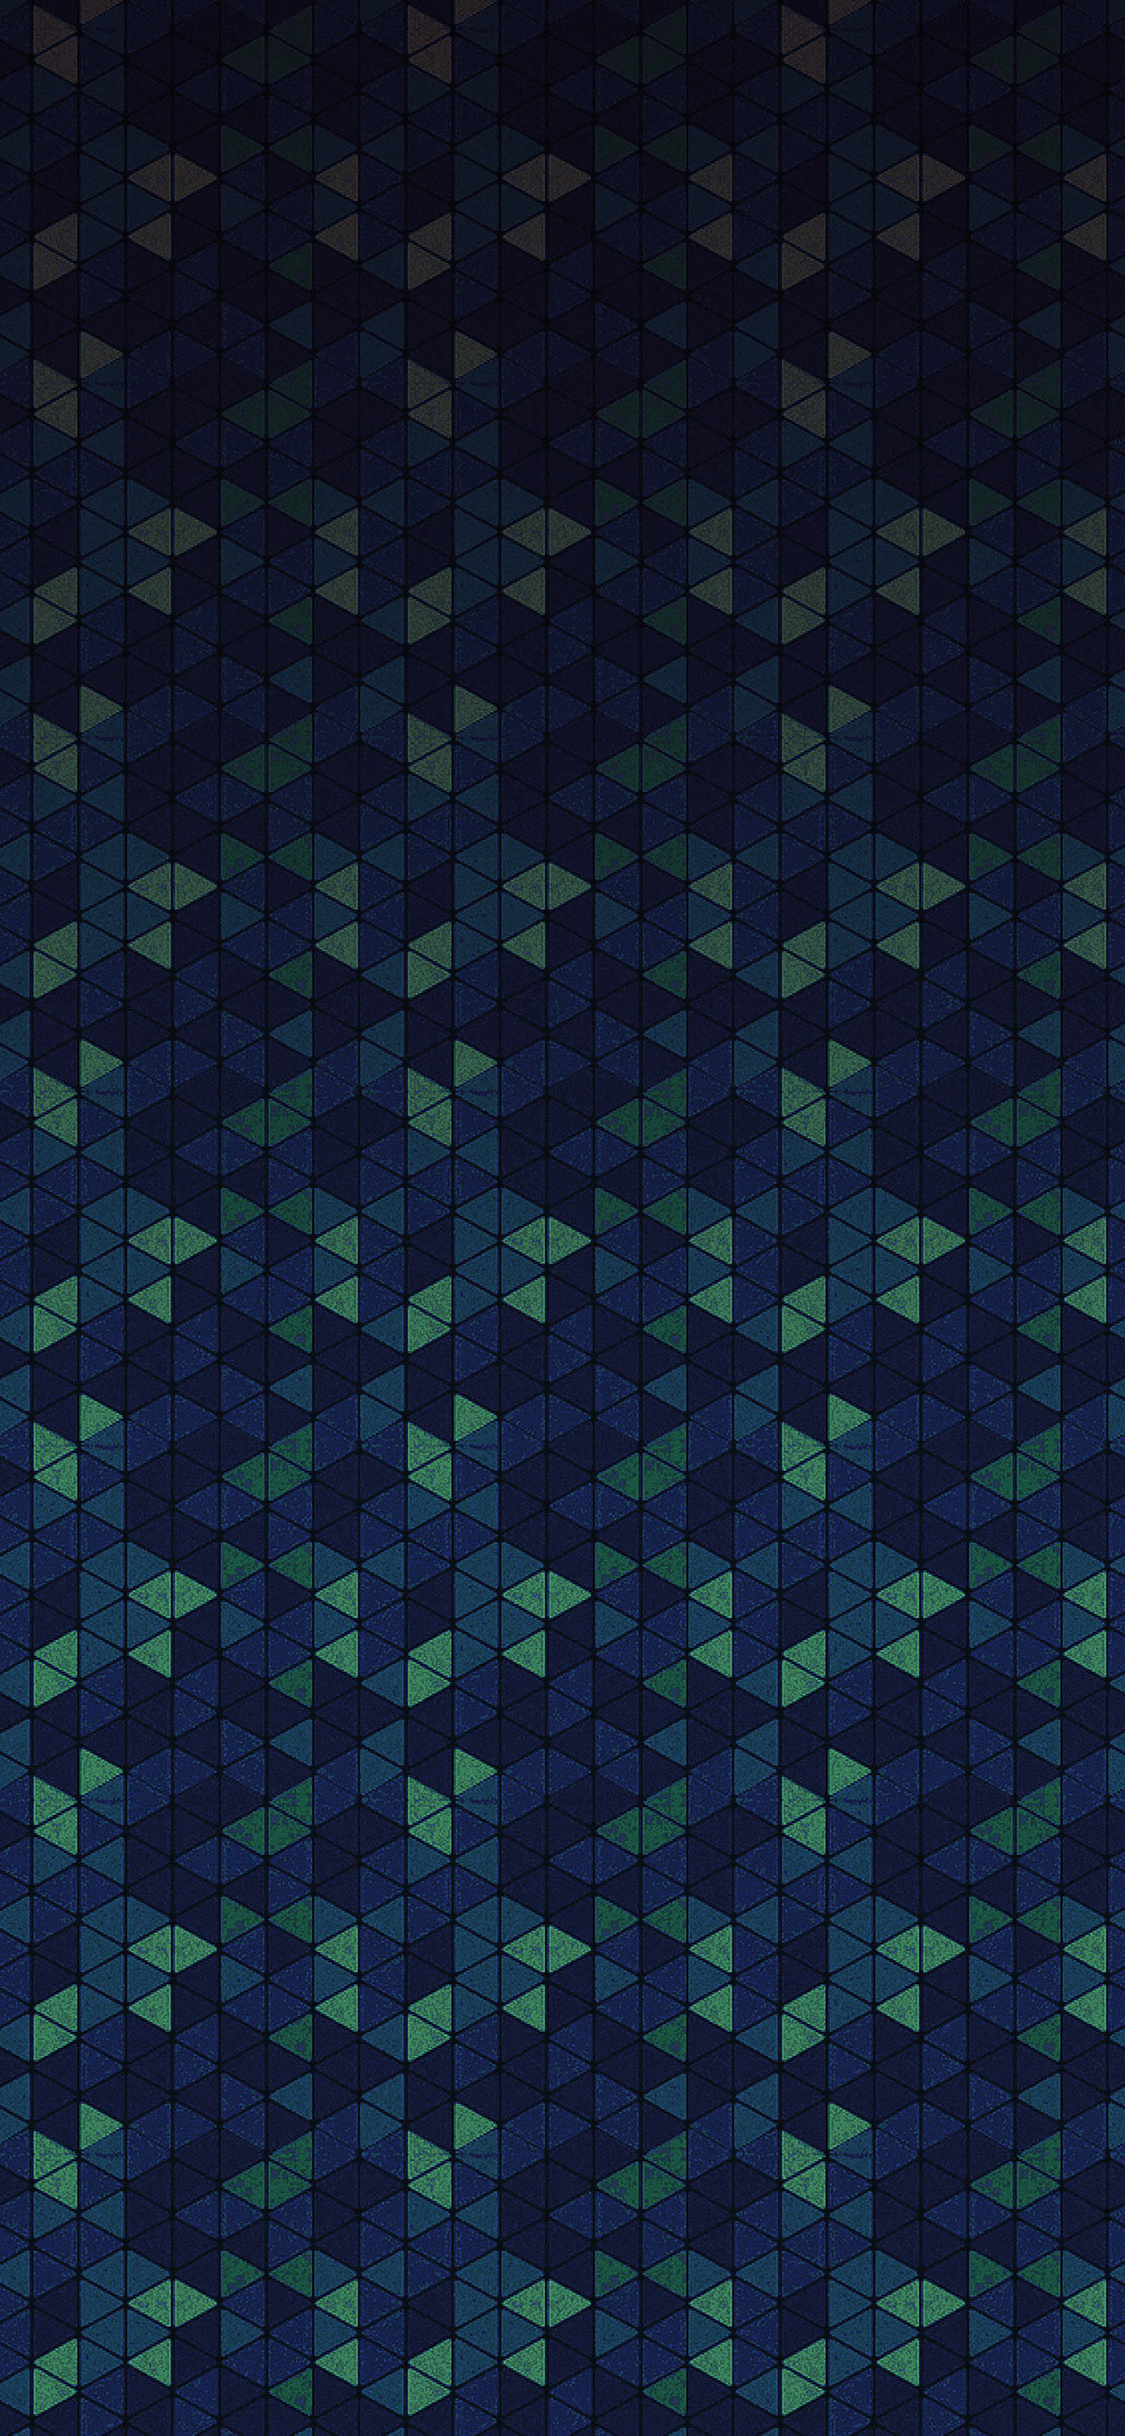 iPhoneXpapers.com-Apple-iPhone-wallpaper-vb49-wallpaper-gplay-real-blue-pattern